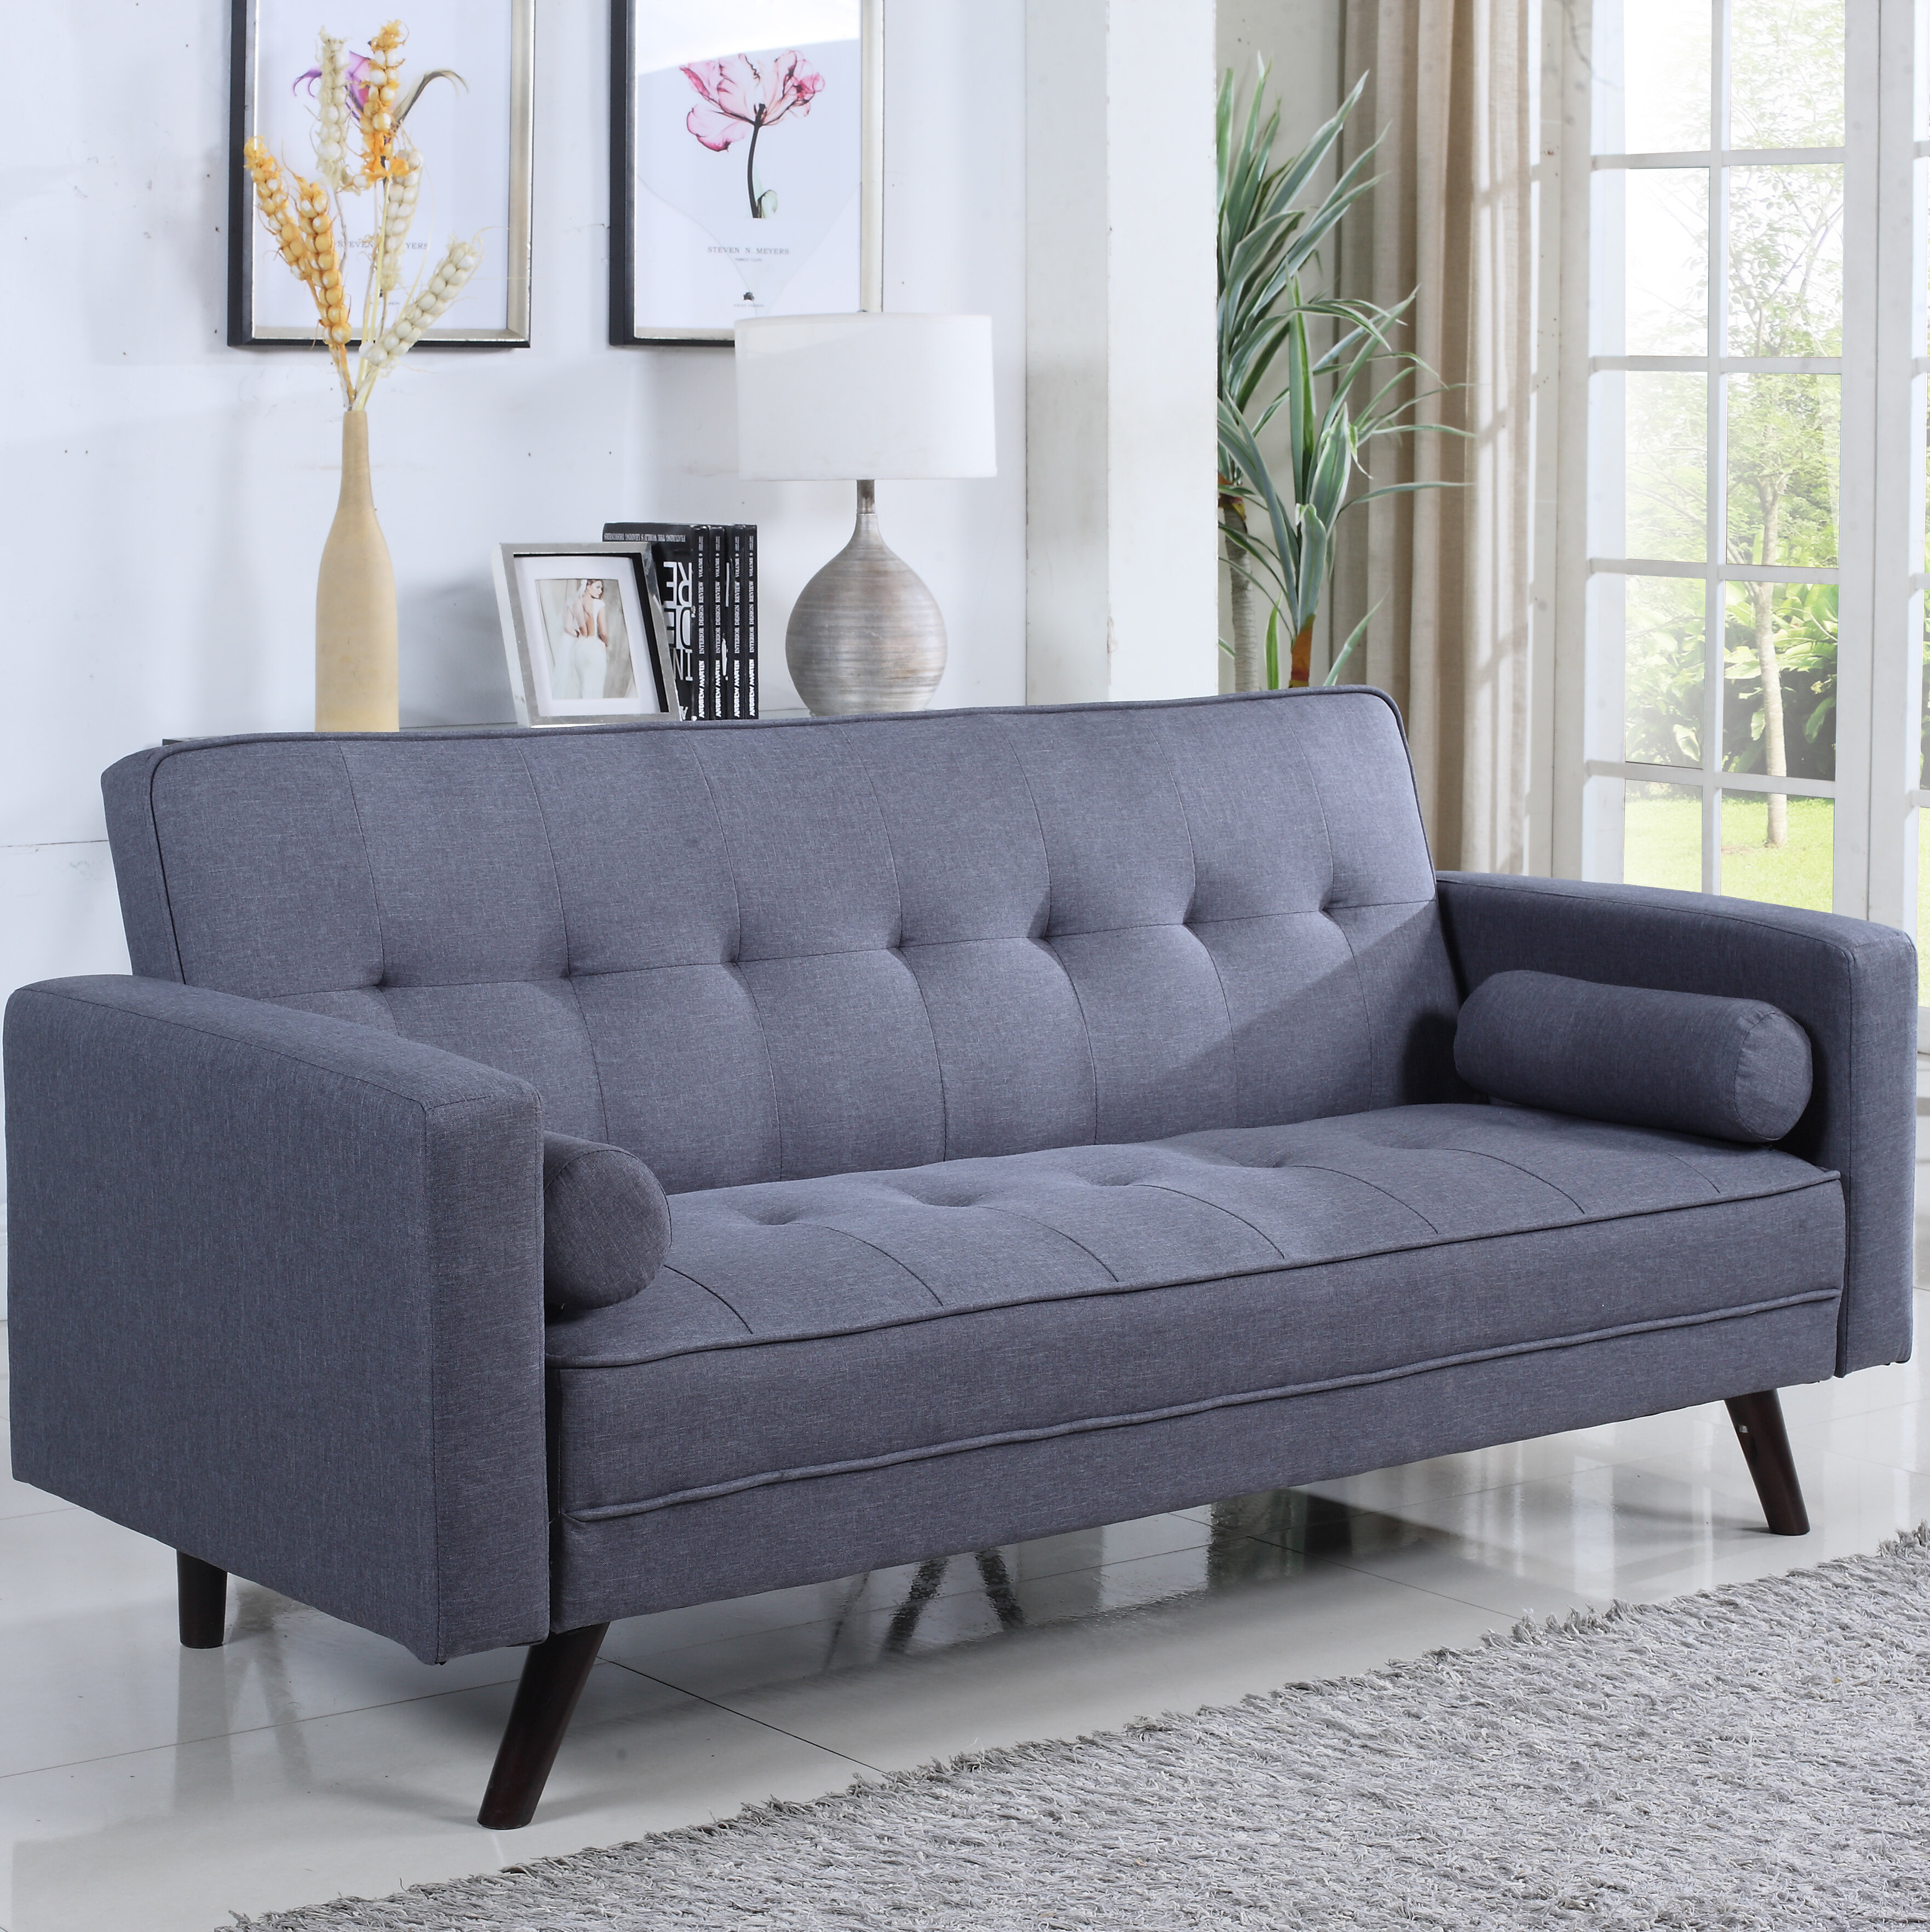 couch enlarge click furniture sd the durablend home ashley classy sofa product antique couches to